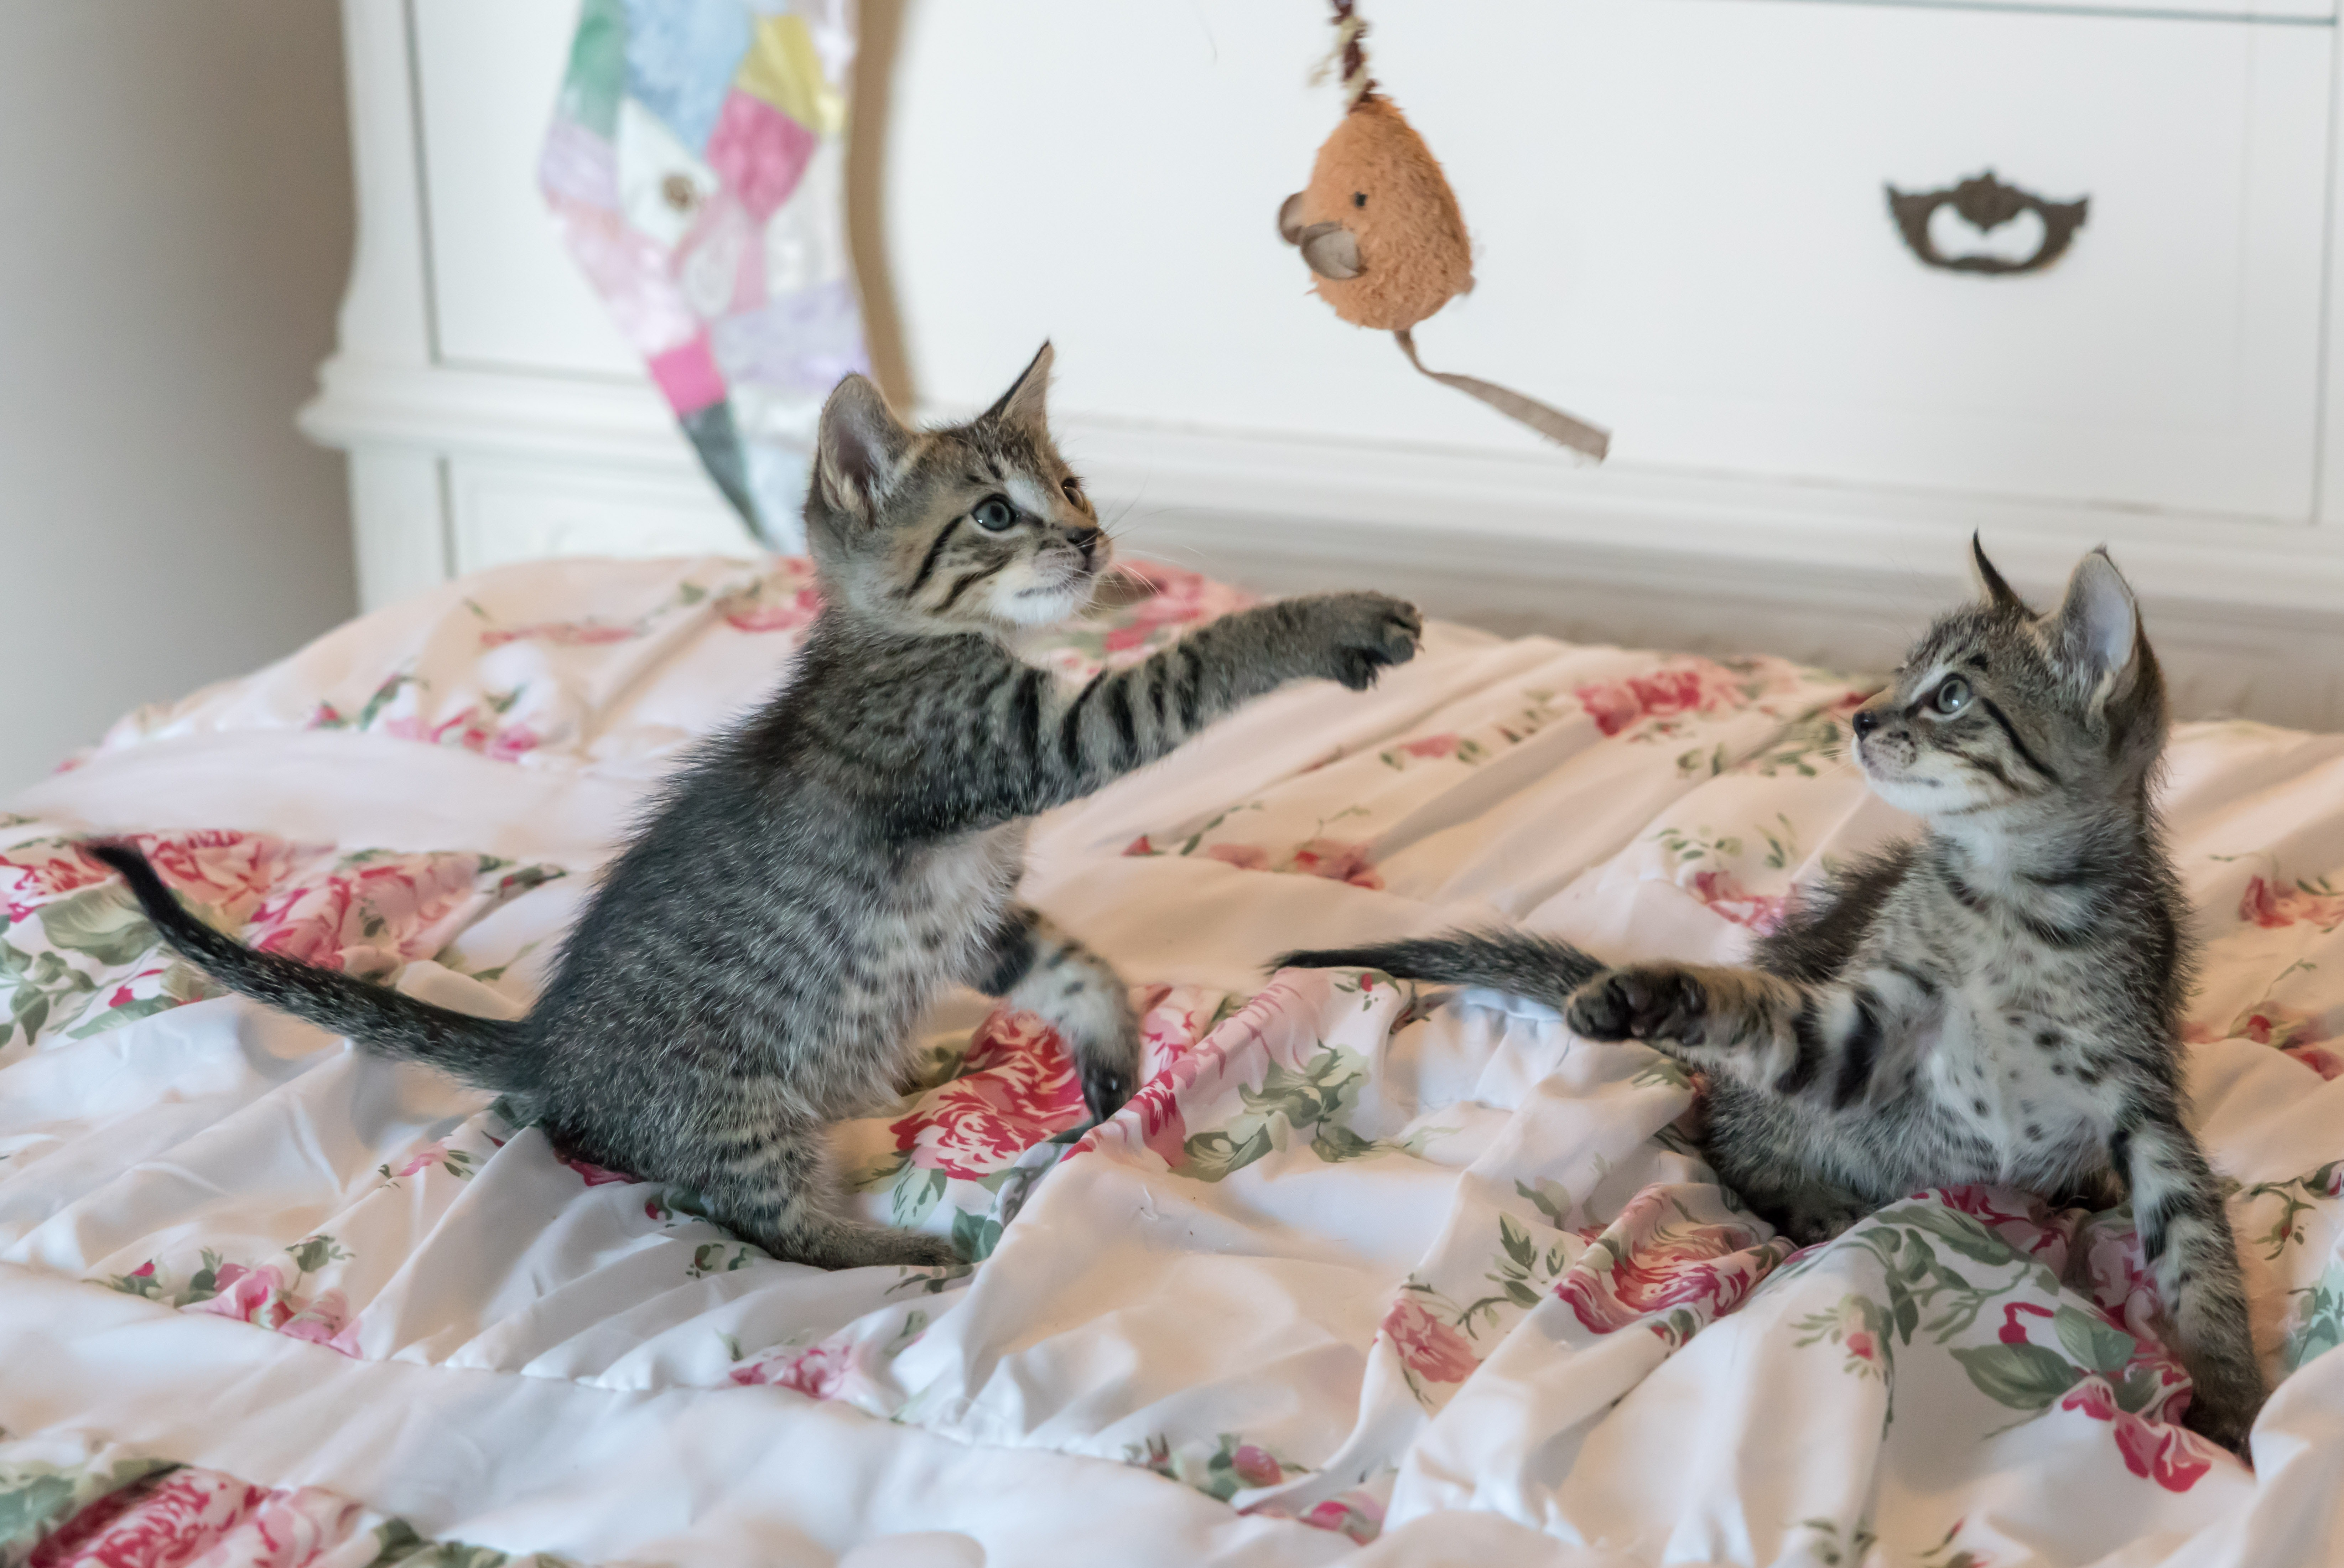 Tabby kittens on floral comforter photo